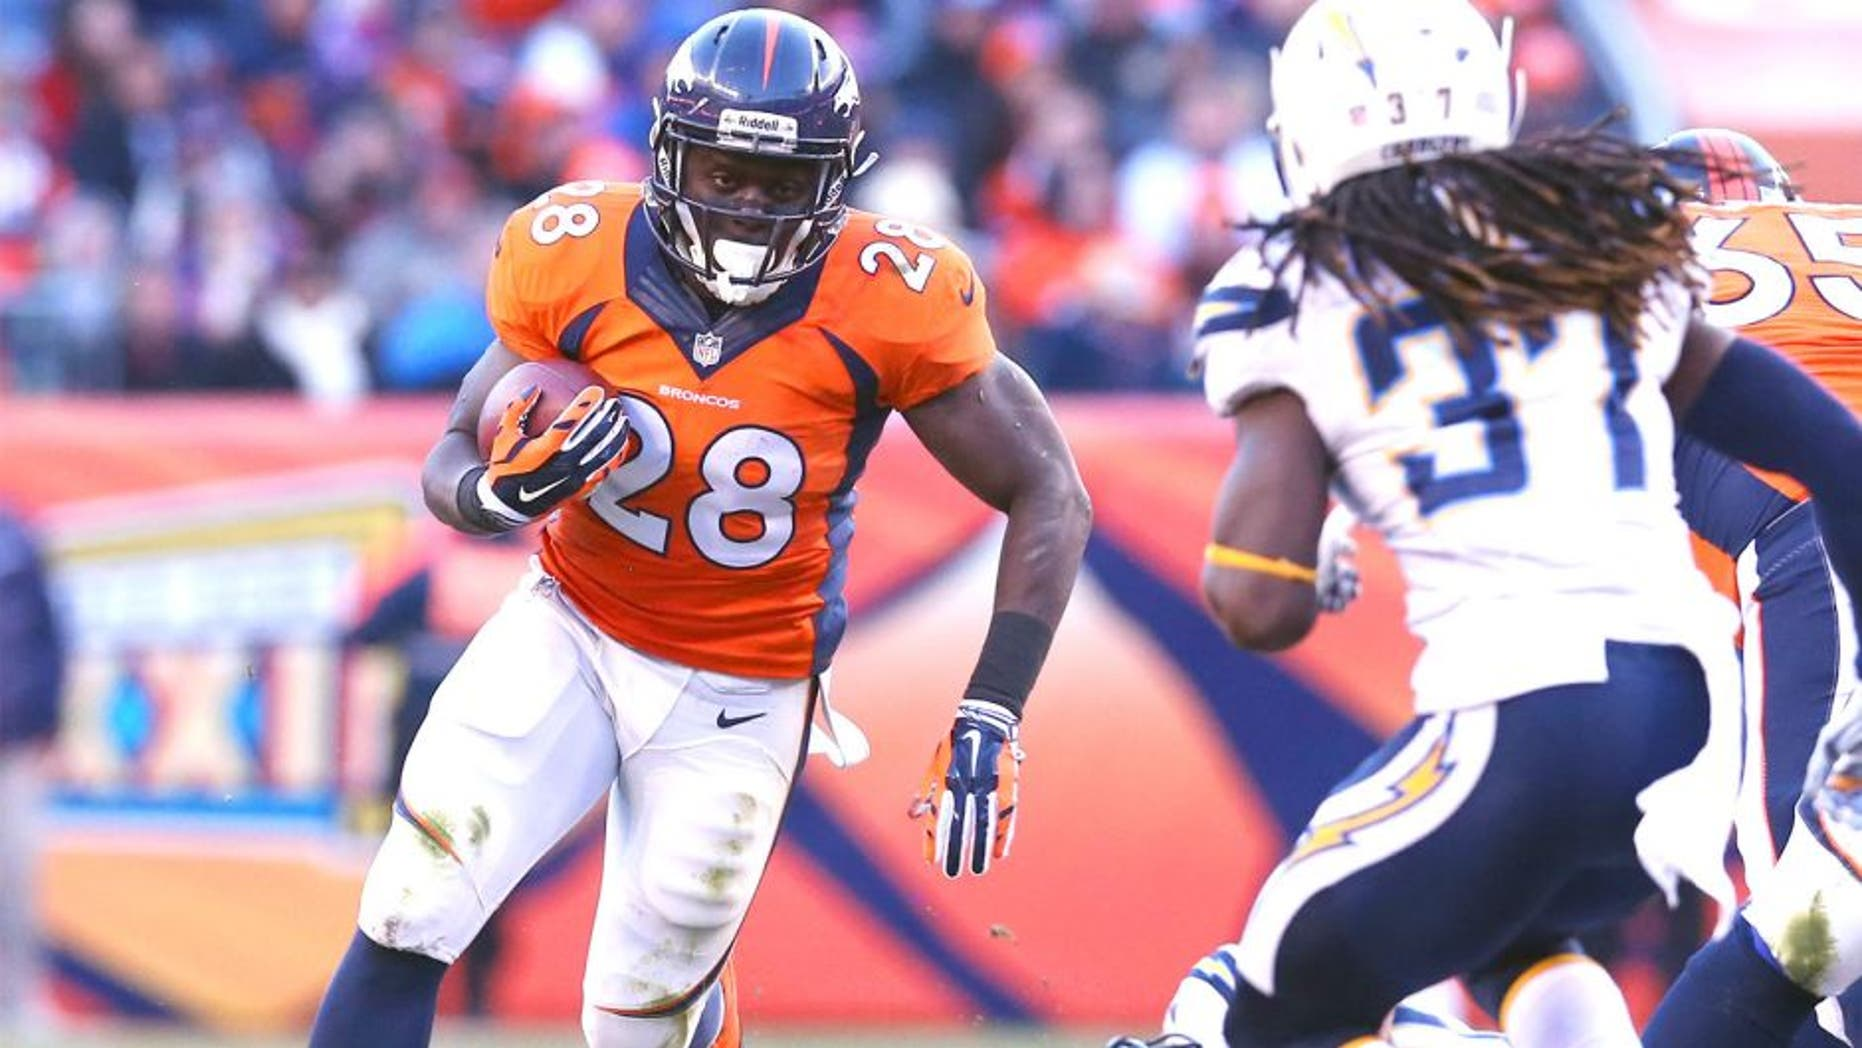 Jan 12, 2014; Denver, CO, USA; Denver Broncos running back Montee Ball (28) runs with the ball against San Diego Chargers safety Jahleel Addae (37) during the 2013 AFC divisional playoff football game at Sports Authority Field at Mile High. Mandatory Credit: Matthew Emmons-USA TODAY Sports